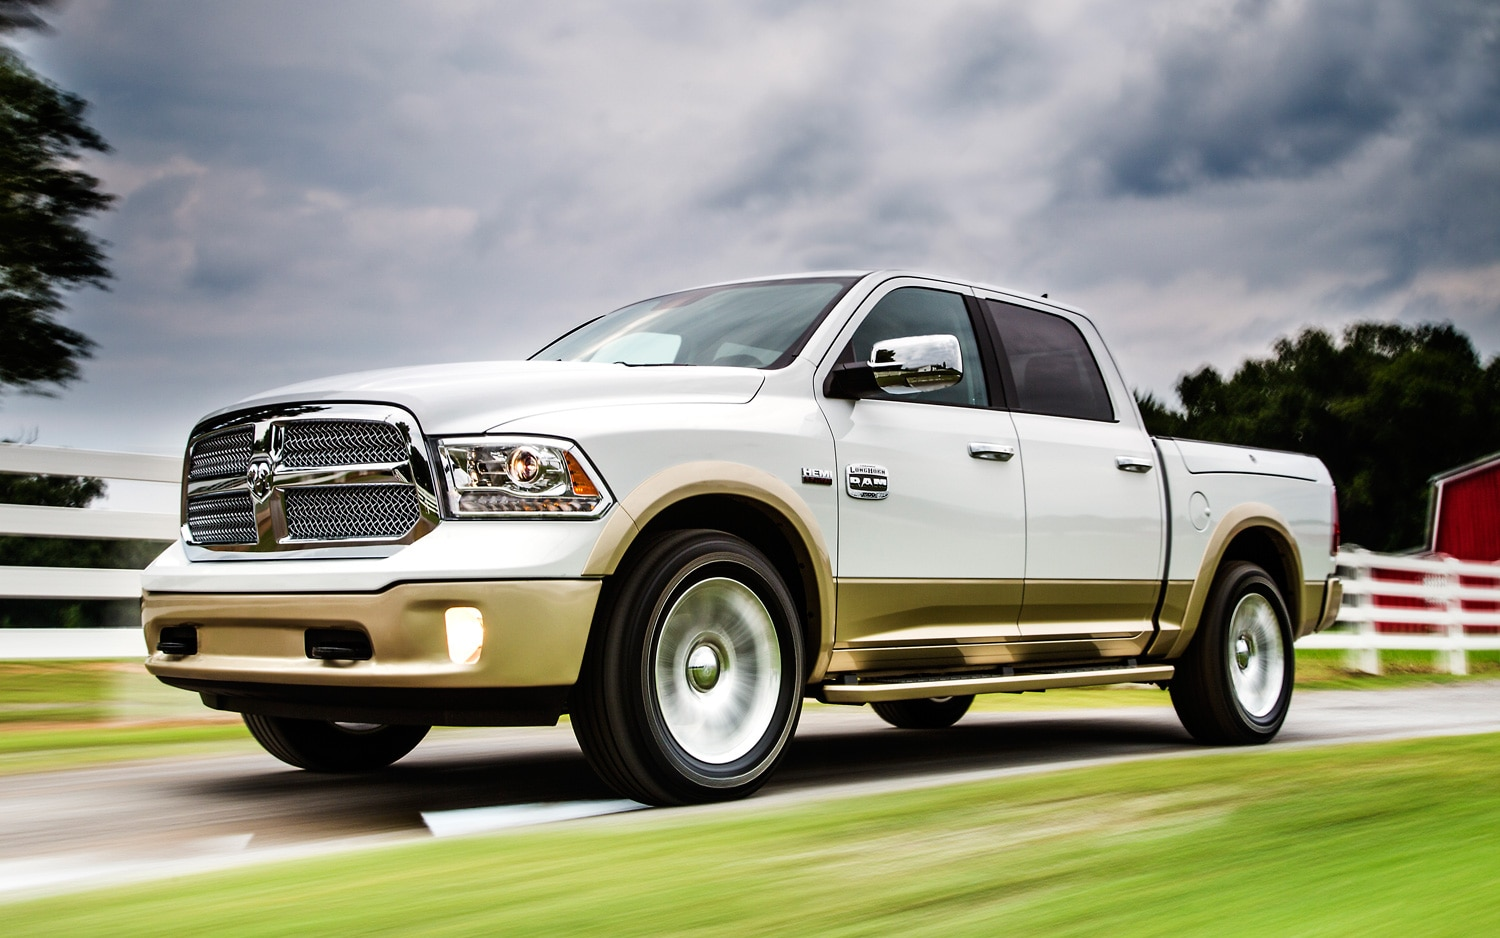 2013 Ram 1500 Front View In Motion